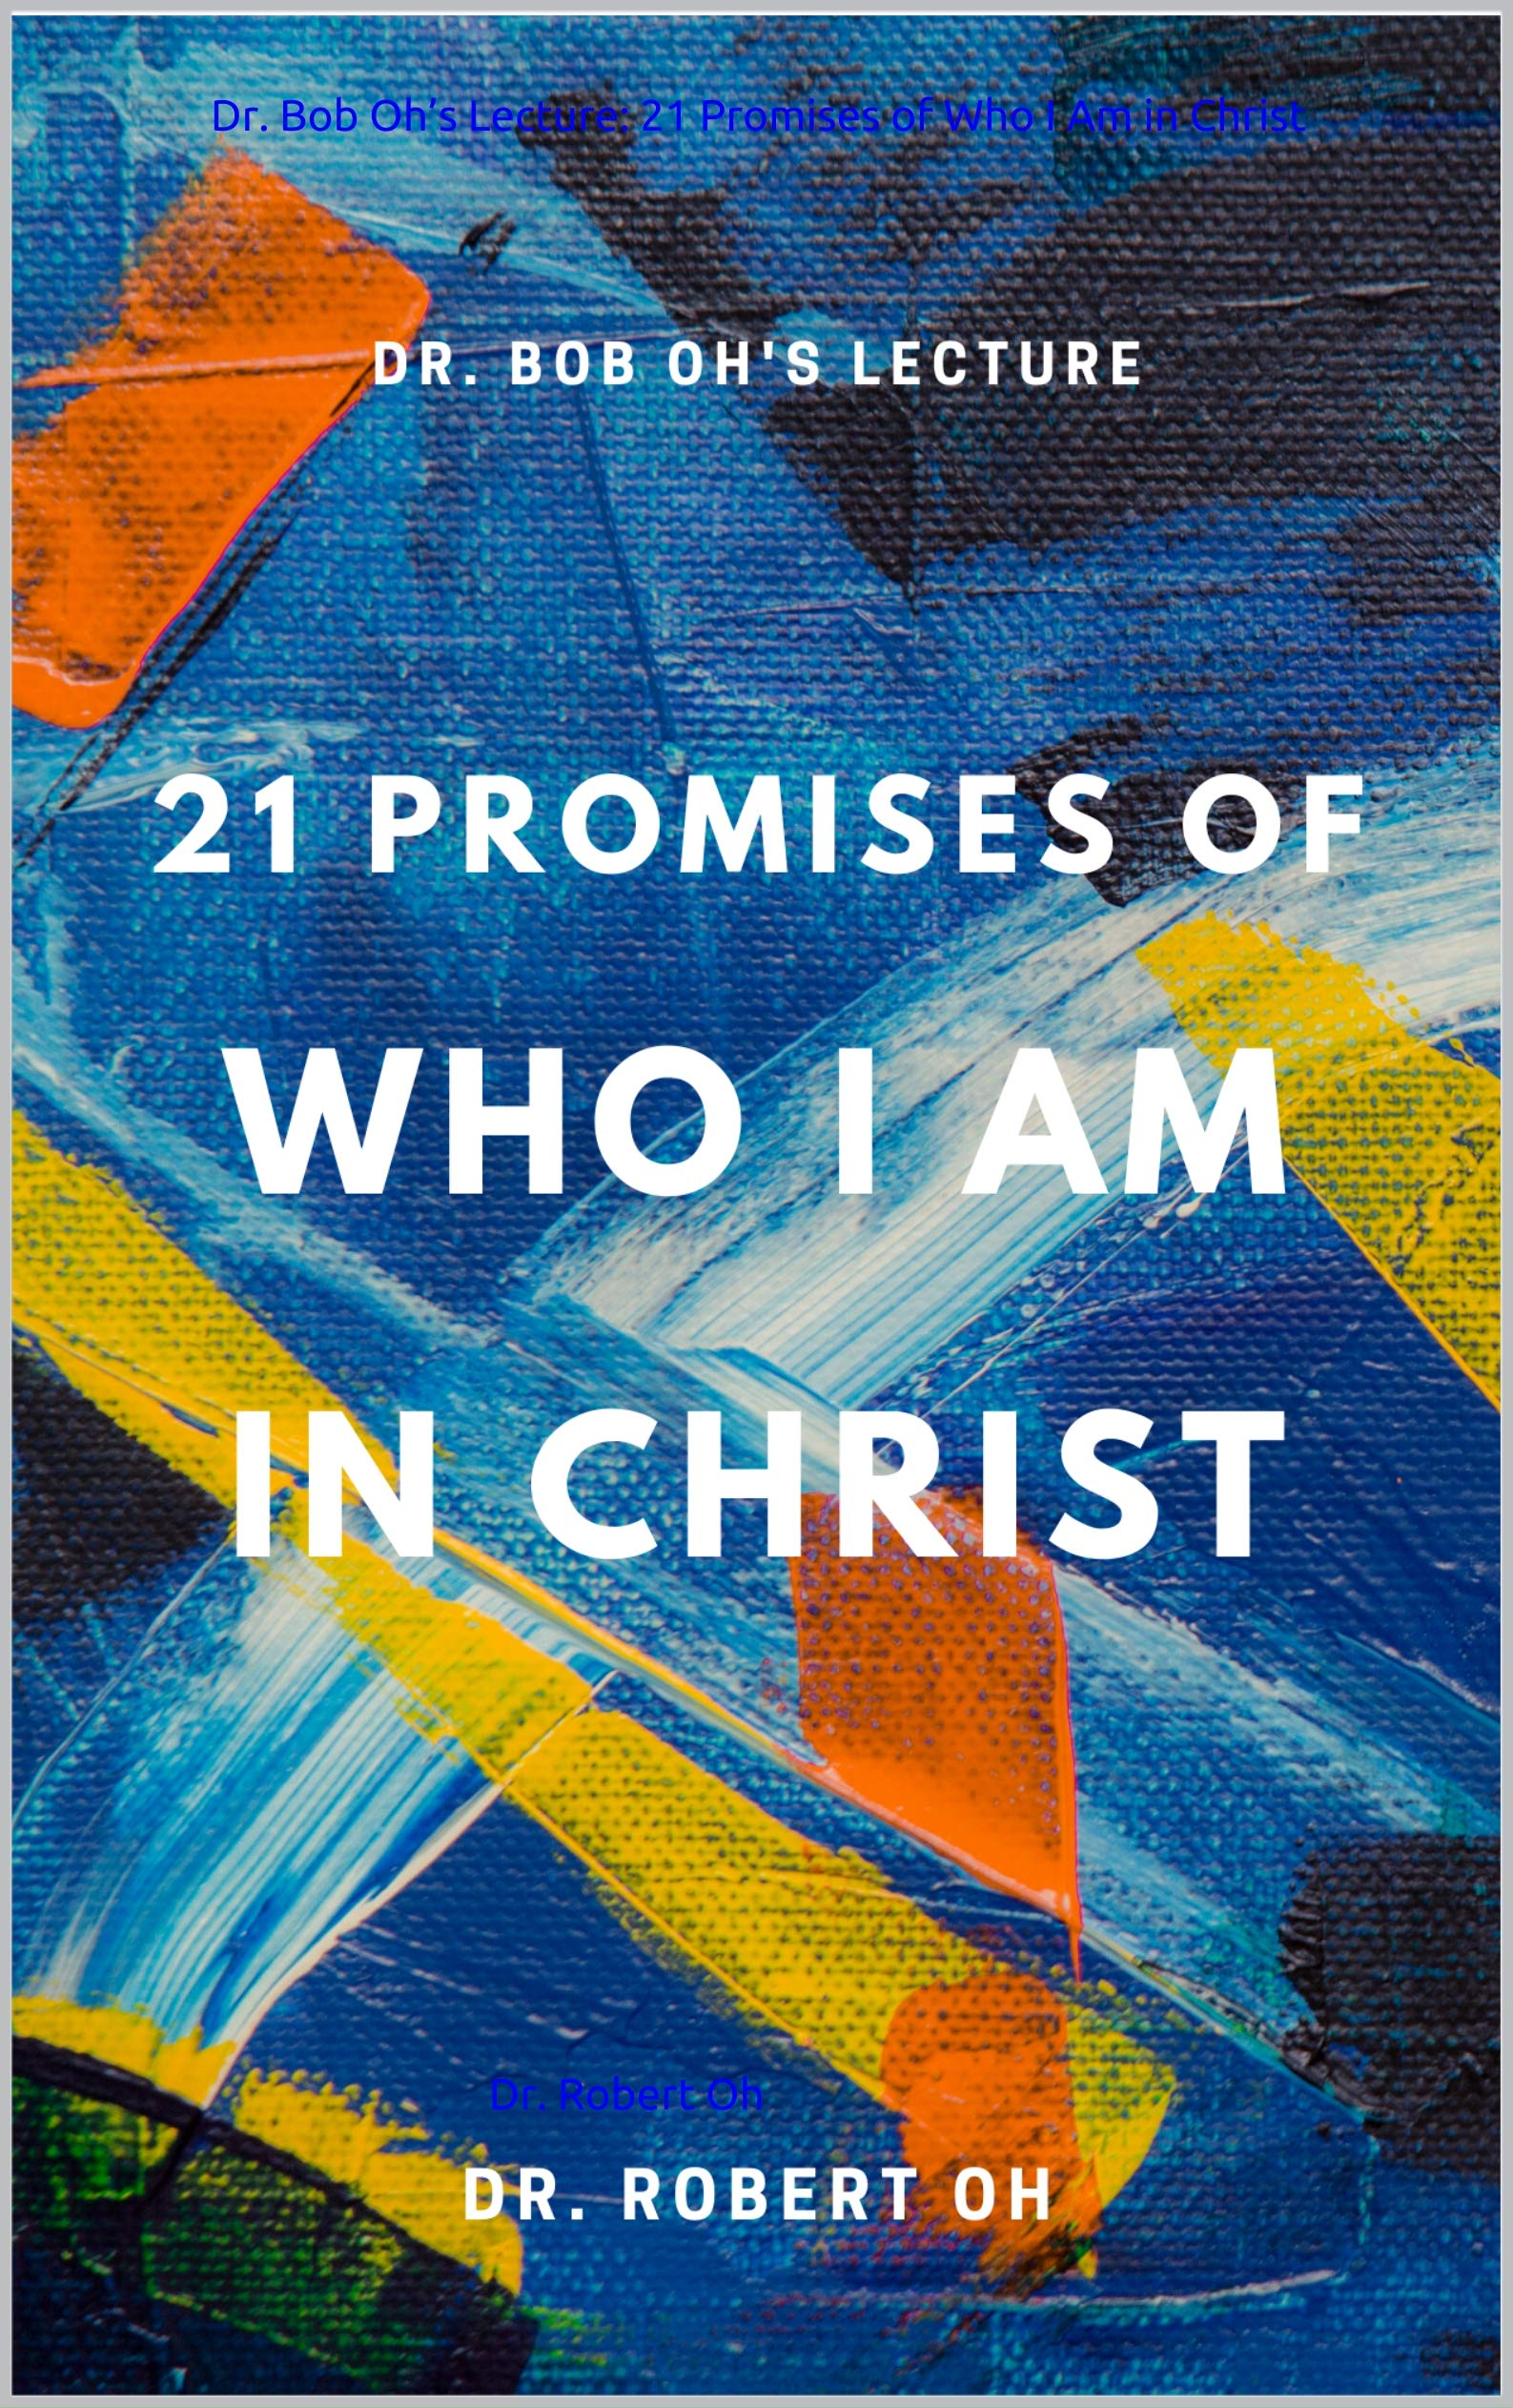 Dr. Bob Oh's Lecture: 21 Promises of Who I Am in Christ